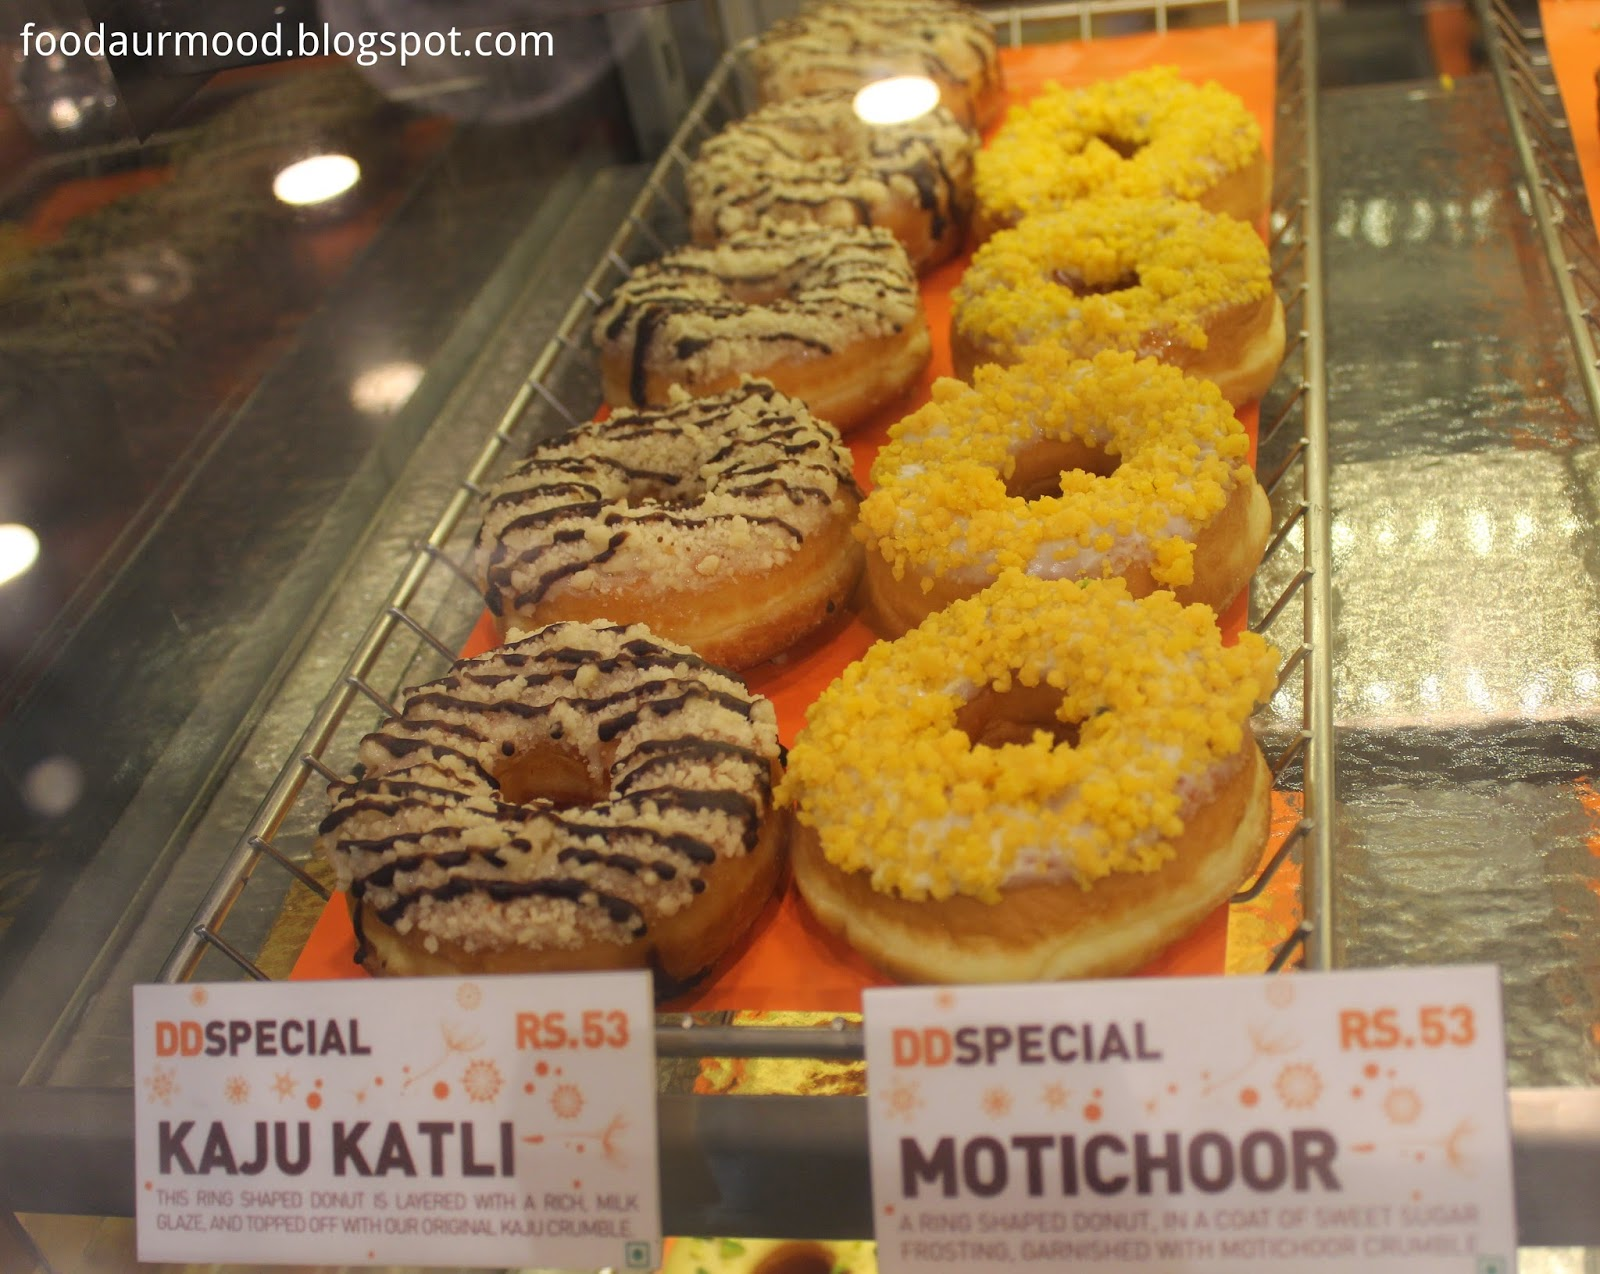 Dunkin Donuts India, CP, Donuts